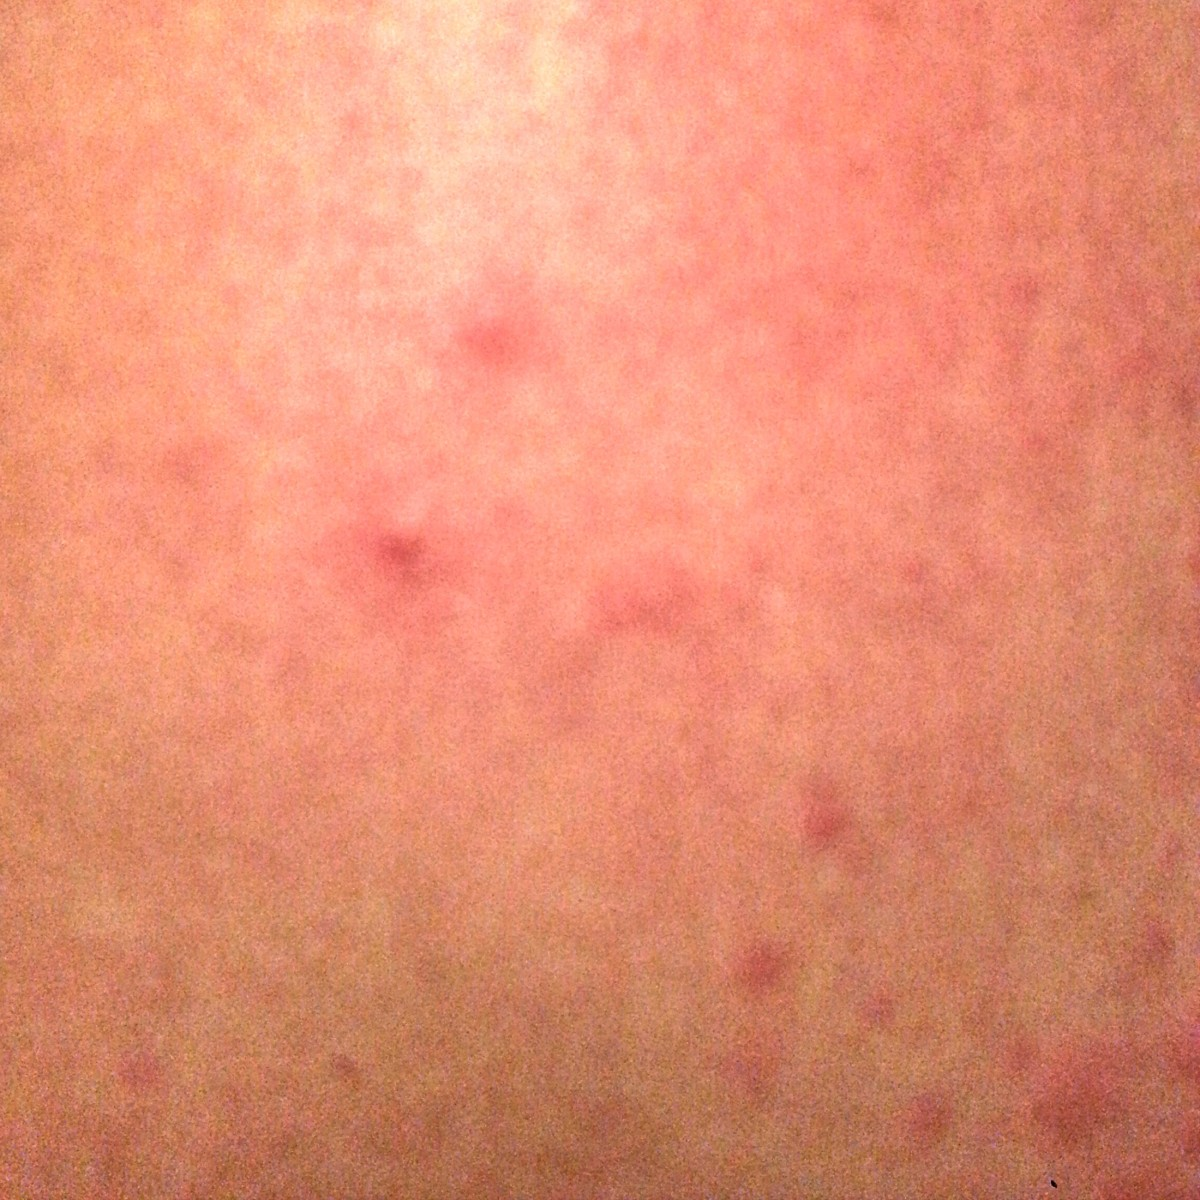 A picture of the back of my leg during one of my more severe breakouts. The red inflamed dots appear for about an hour, get increasingly swollen and irritating, then go away.